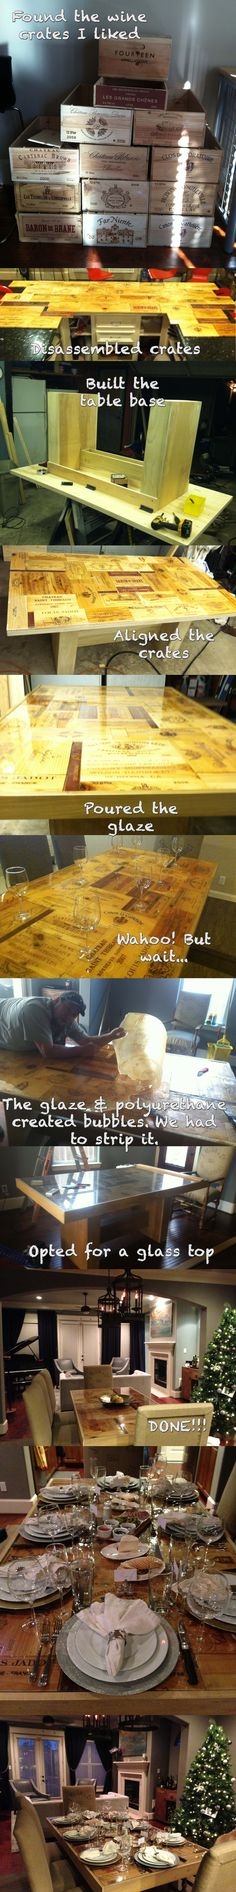 My wine crate table - with the help of Teddy Lett (Let's Fix it Workshops in Houston, TX)